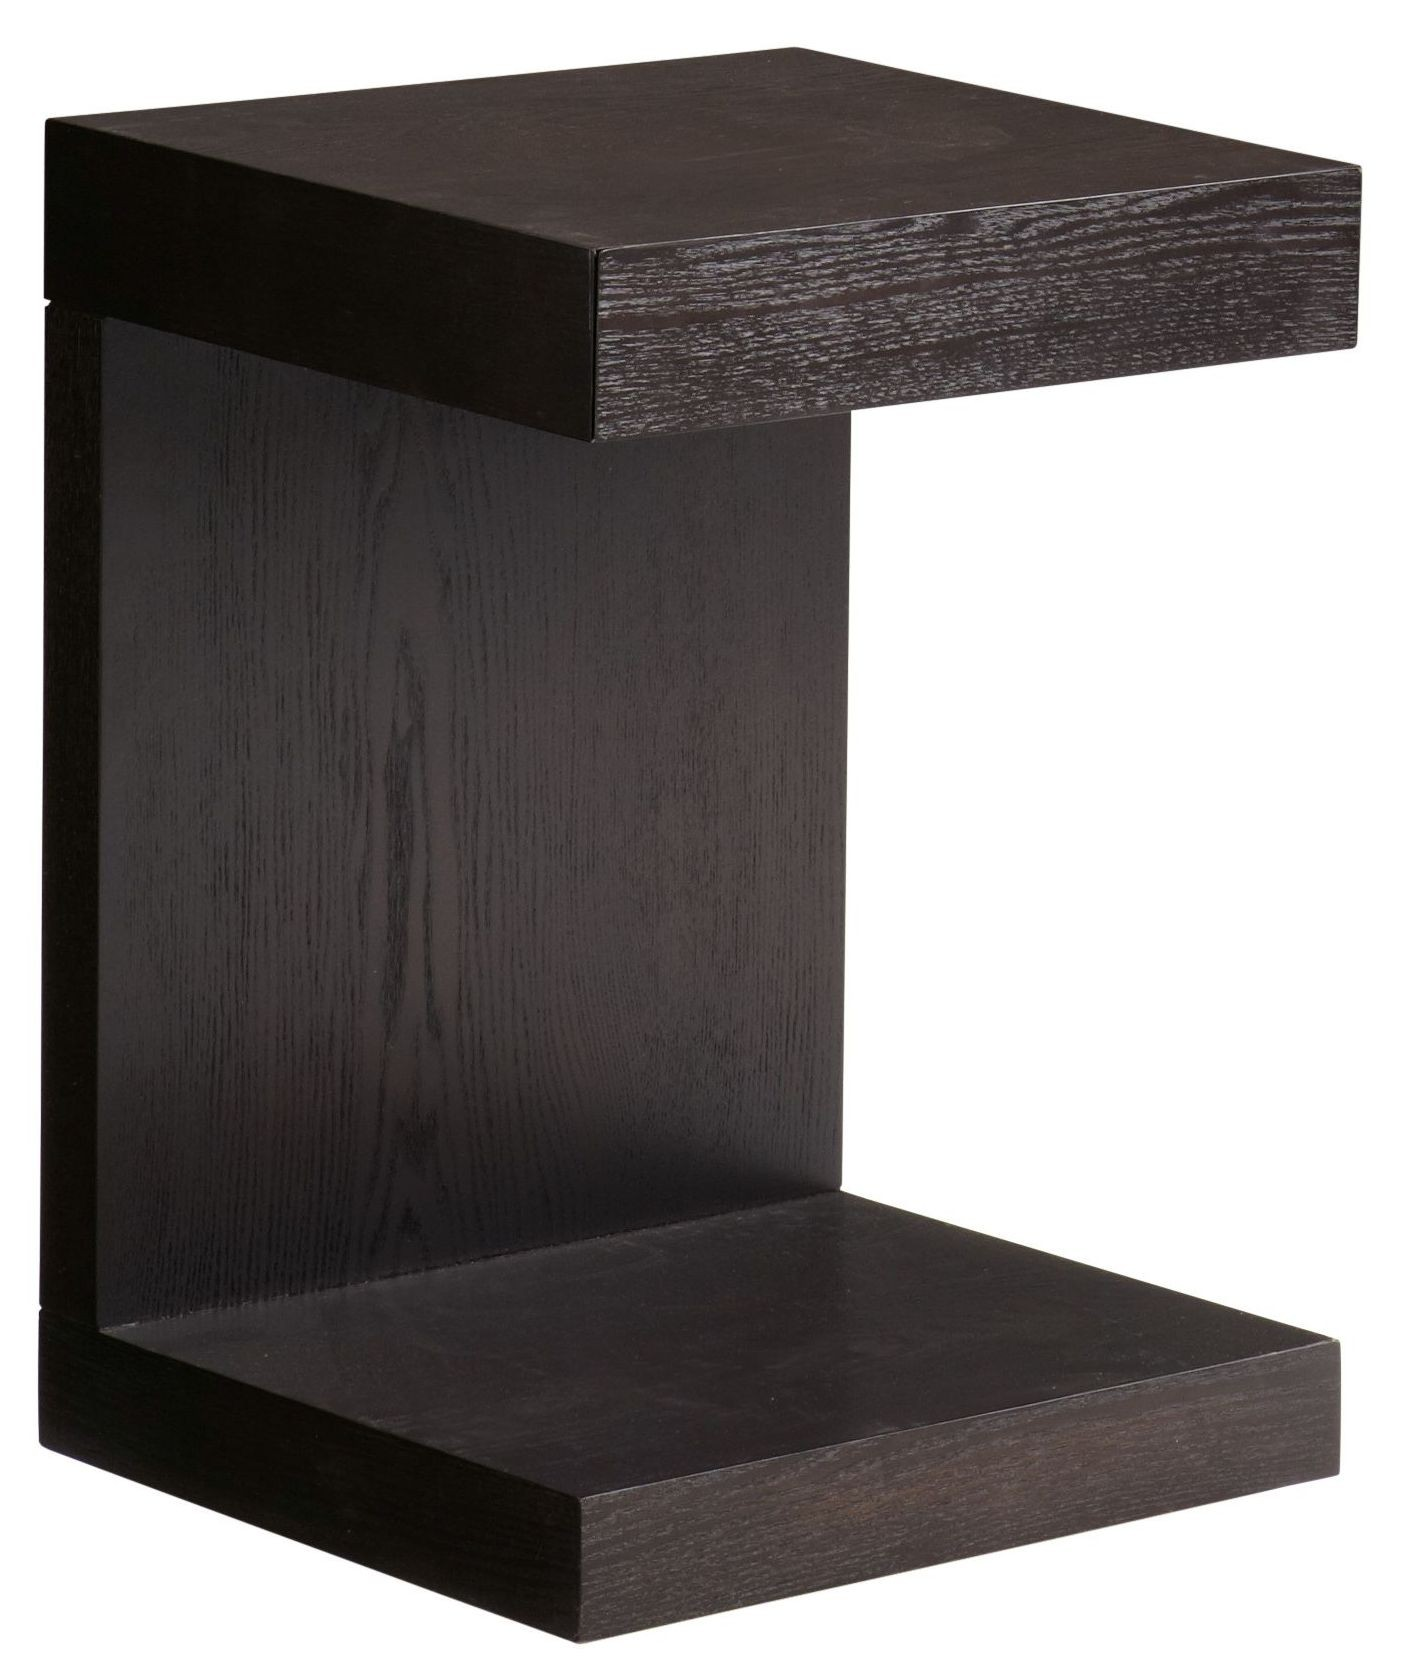 Bachelor tv table with drawer from sunpan 36551 for C table with drawer